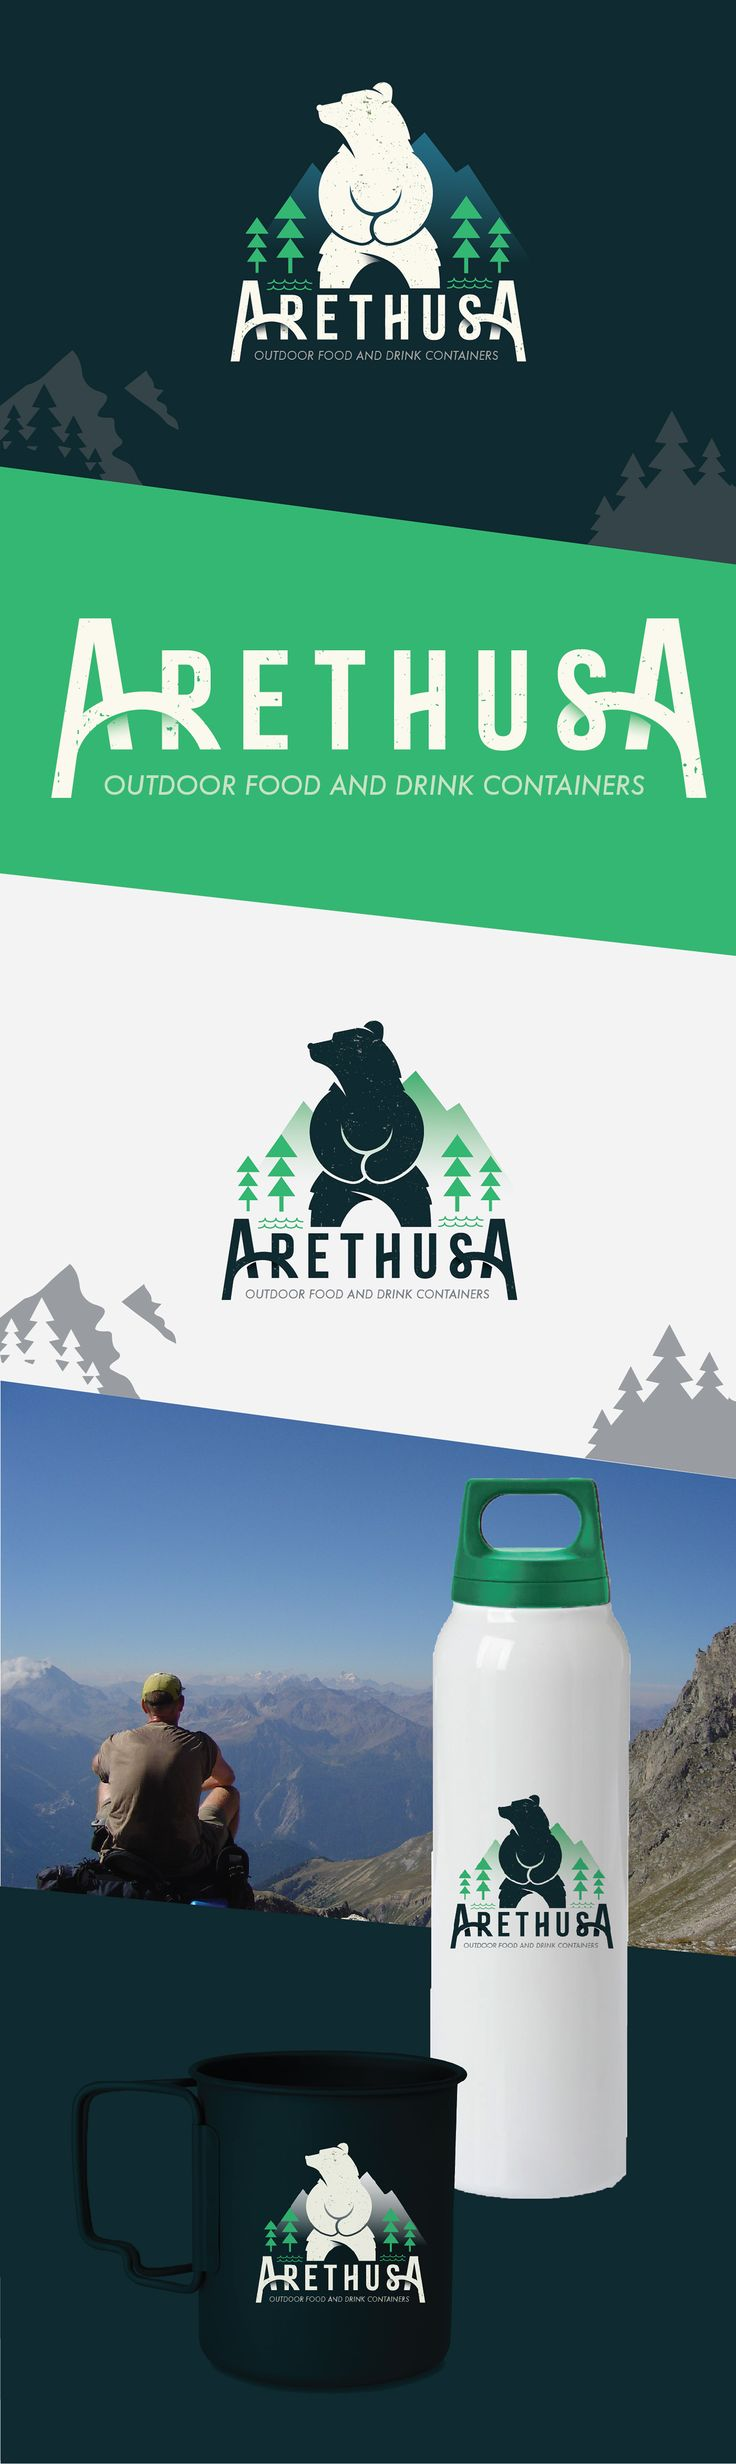 Arethusa Outdoor Food & Drink Containers on Behance